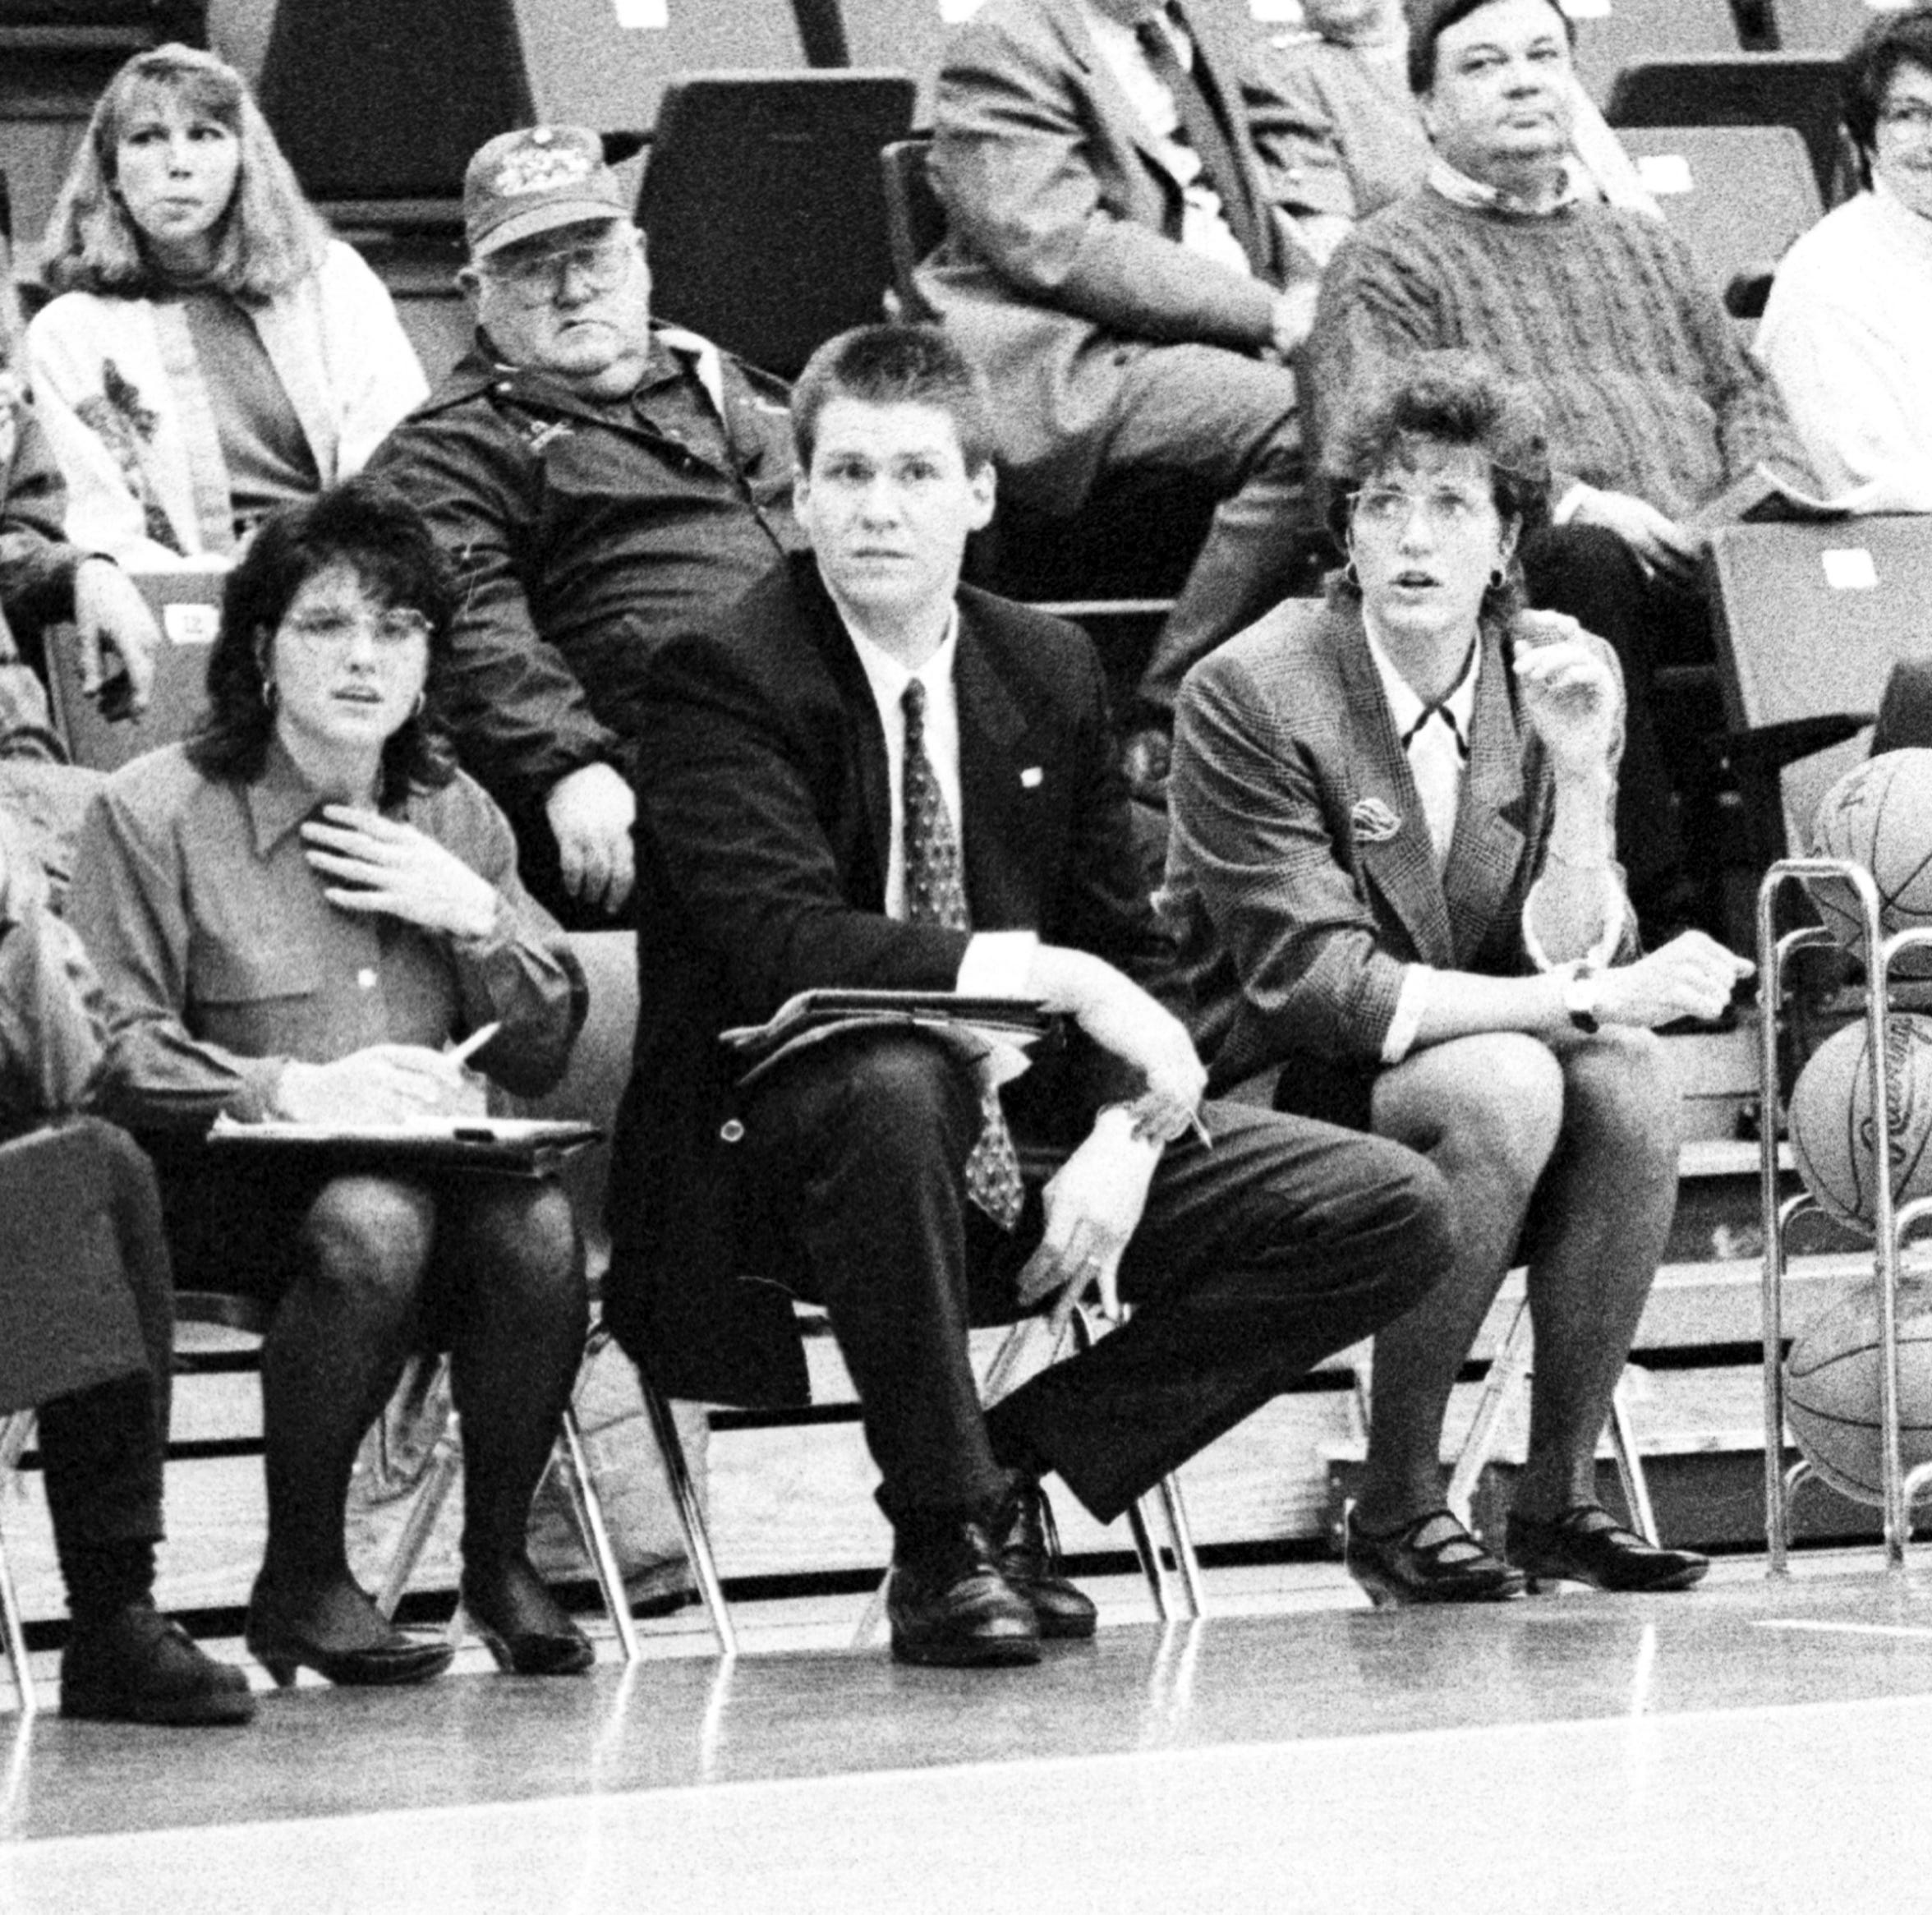 The USI women's program excelled in the 1990s under coach Cance Dugan (far right). Rick Stein, middle, took over the team when Dugan left to coach Division I Florida Atlantic.